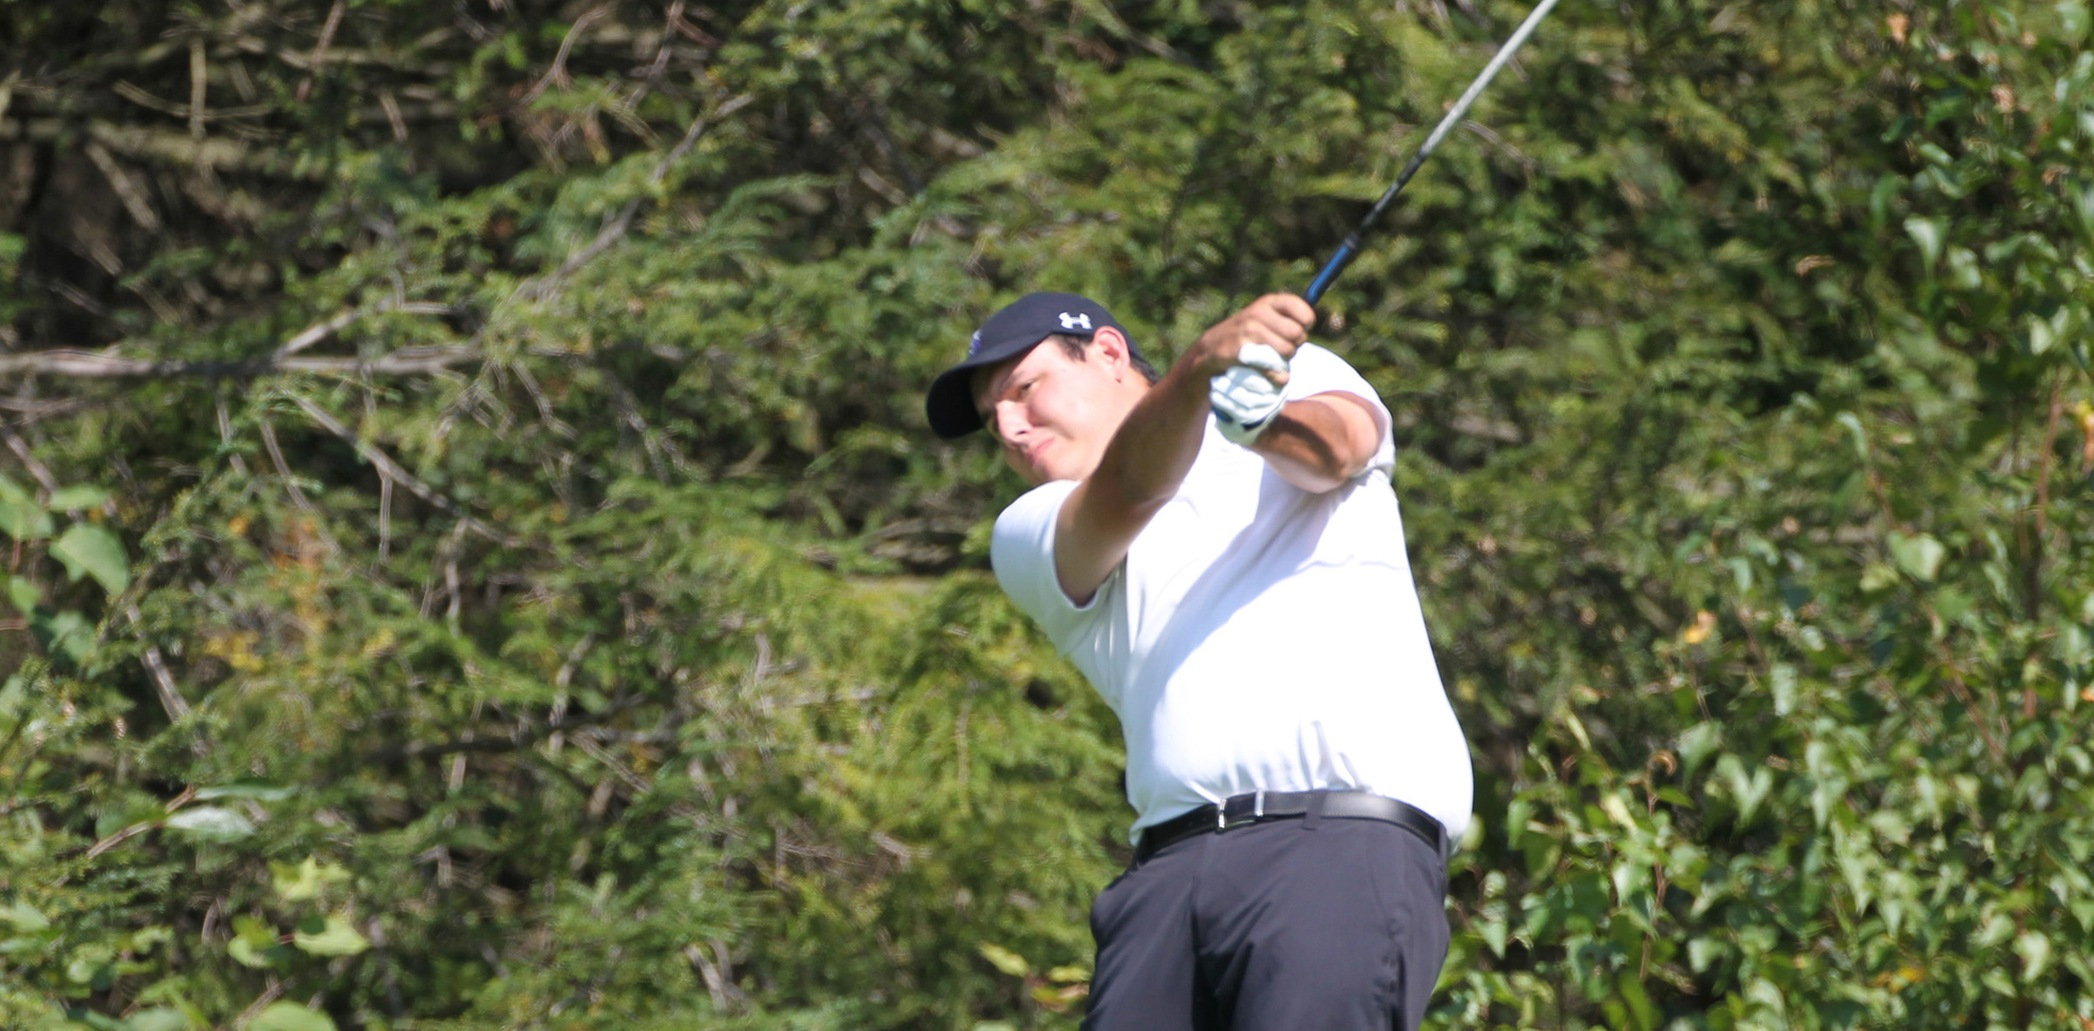 Junior Calvin Ralph shot 74 to lead the Royals to a win over Misericordia on Saturday.